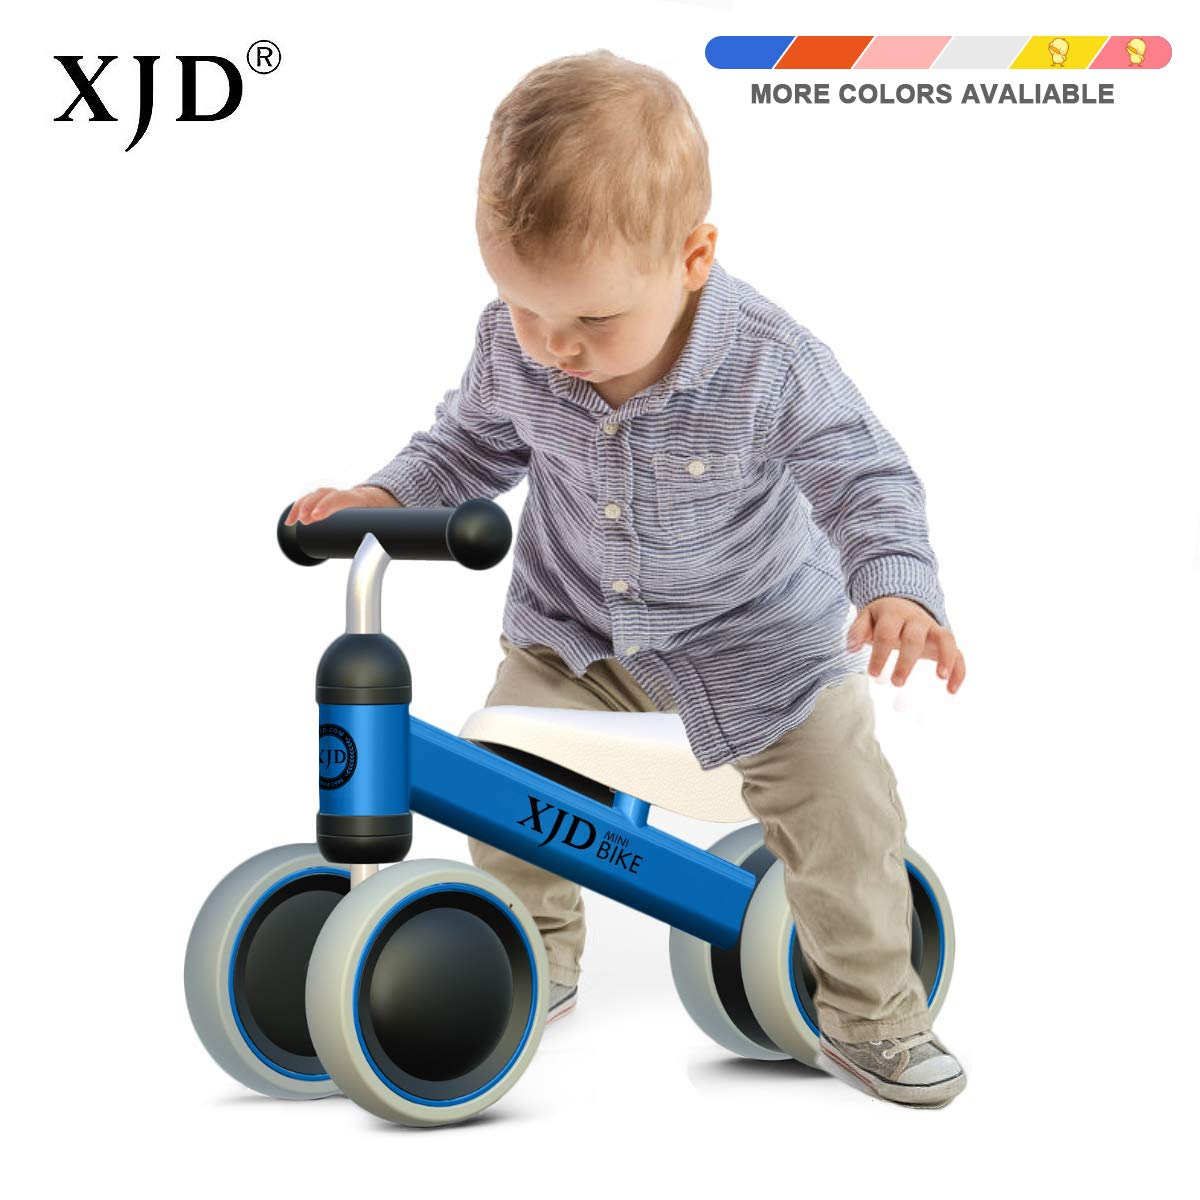 XJD Baby Balance Bikes - Baby Bicycle for 10-24 Months Toddler Bike for 1 Year Old Boy Girl Infant Safe Riding Toys for 1 Year Old First Bike or Birthday Gift Children Walker Blue by XJD